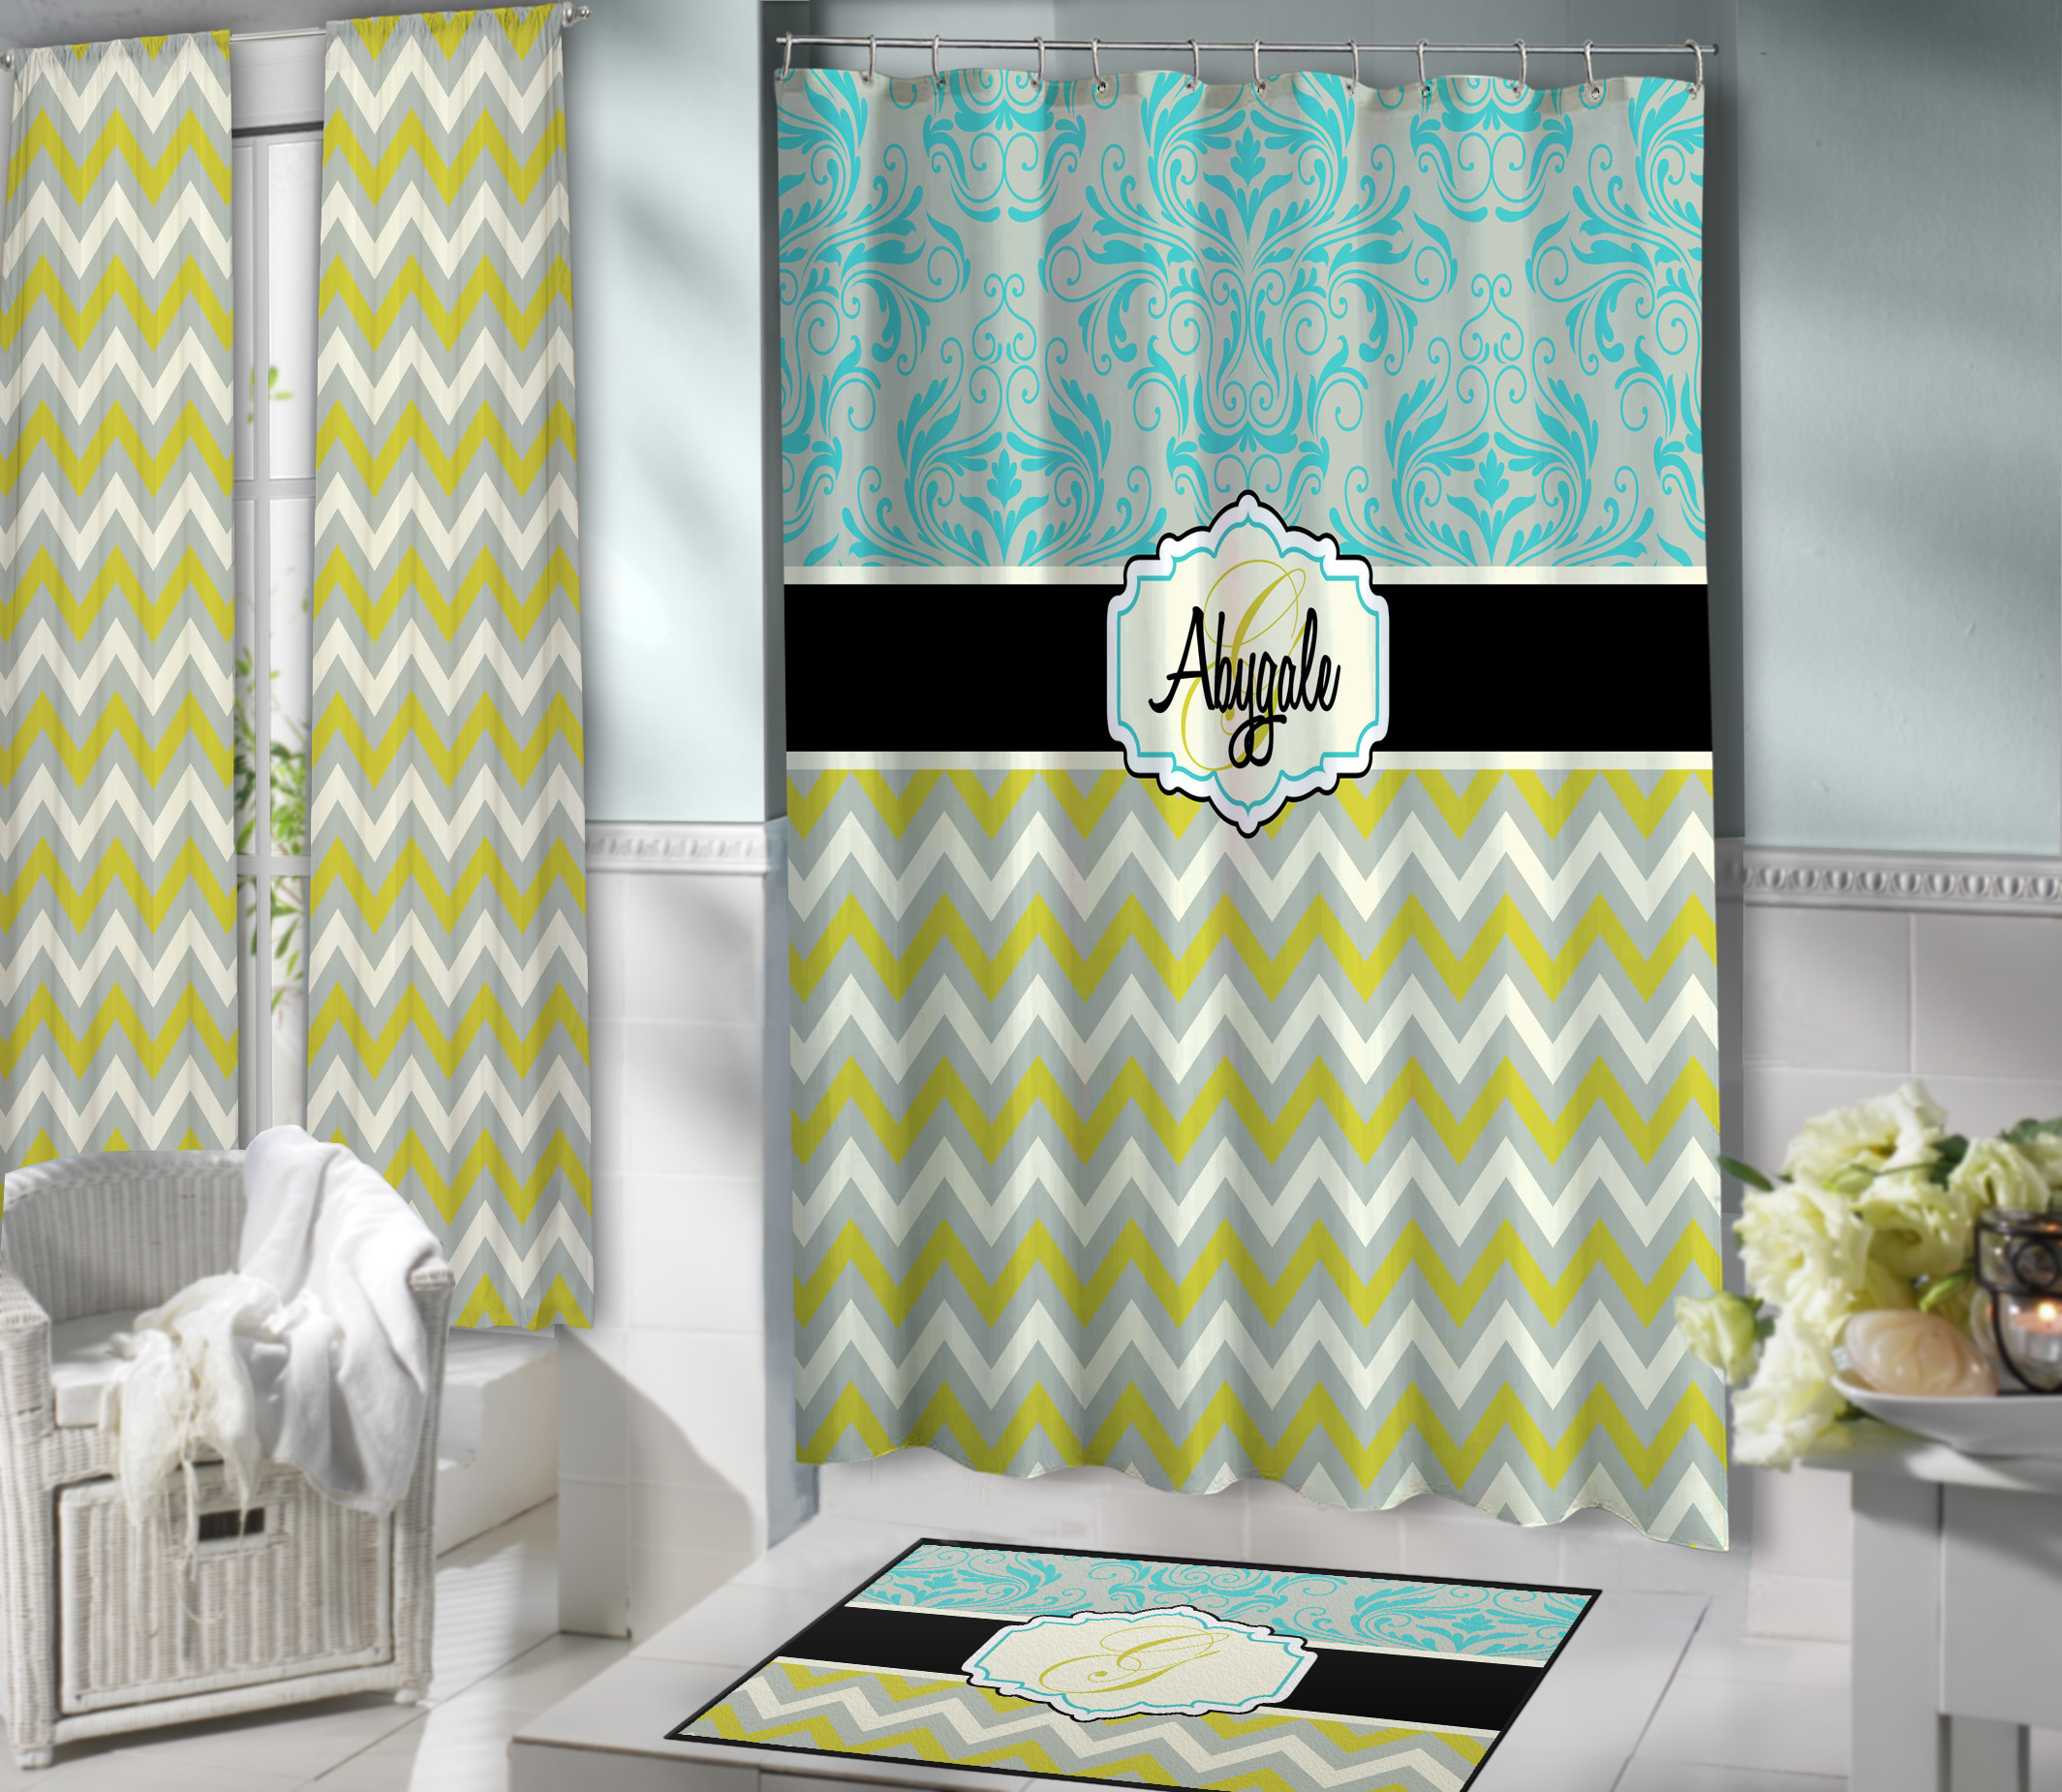 Olive Green And Blue Victorian Shower Curtain Designer Personalized Fabric Curtain 113